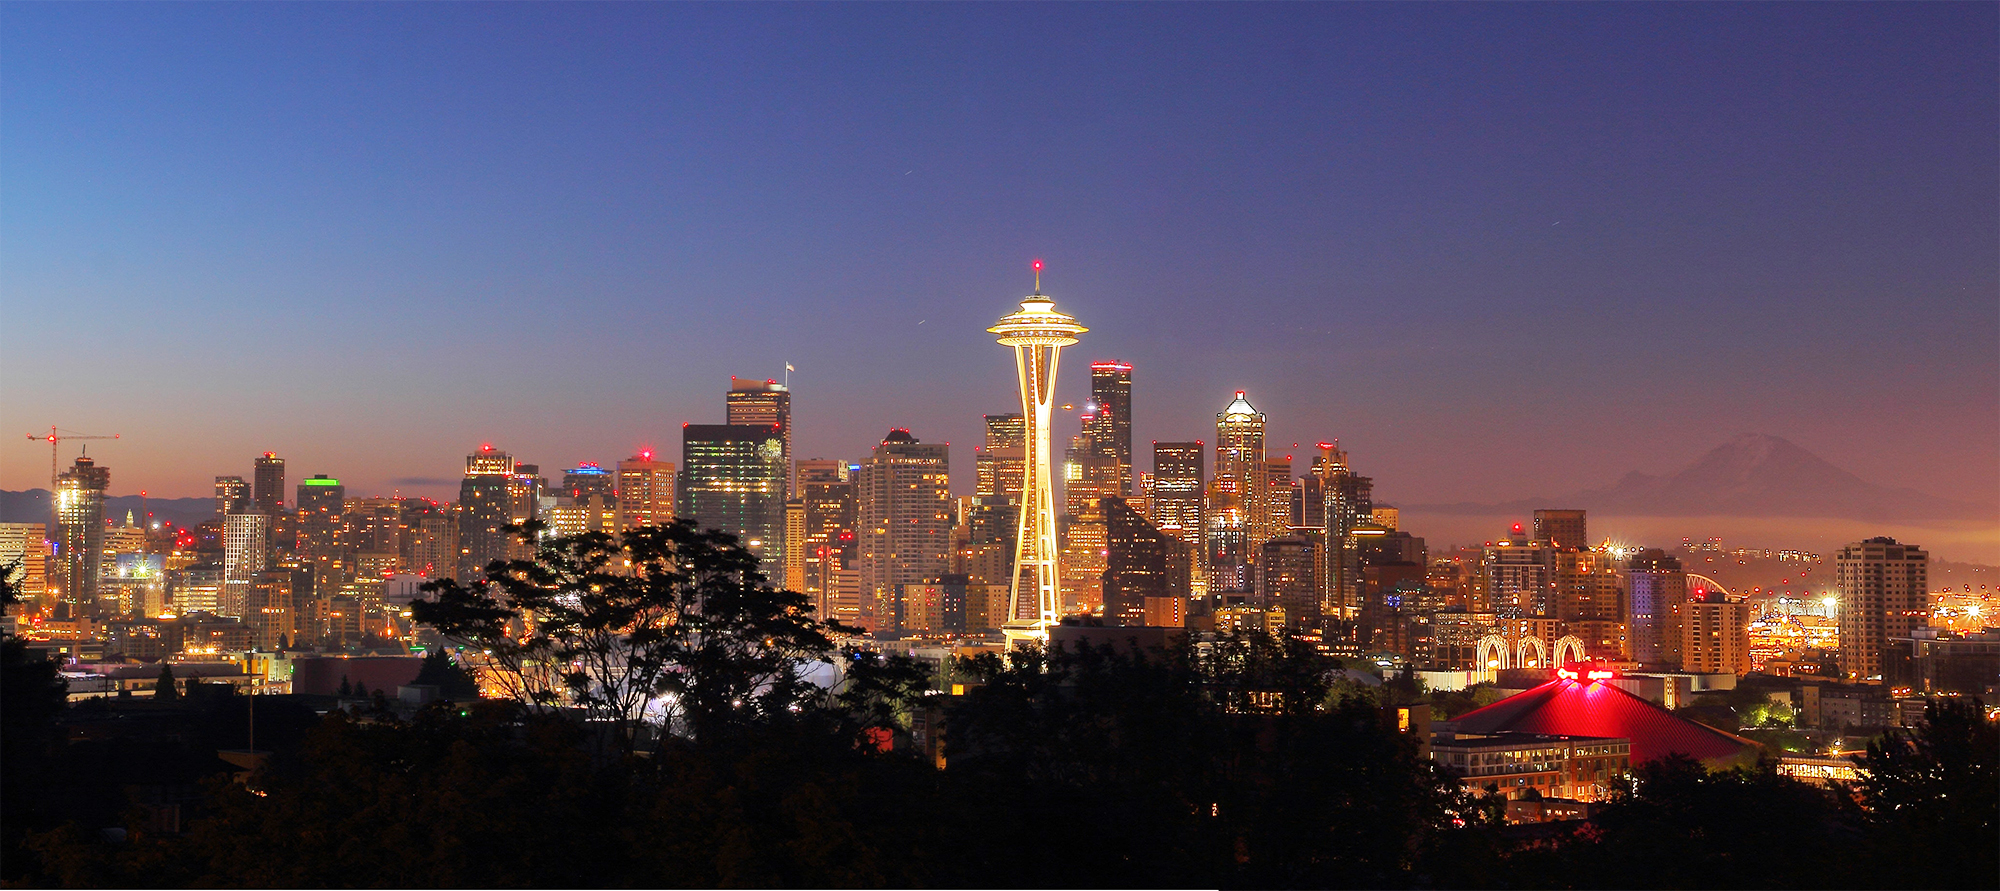 Singapore Airlines will launch non-stop Seattle flights in September 2019